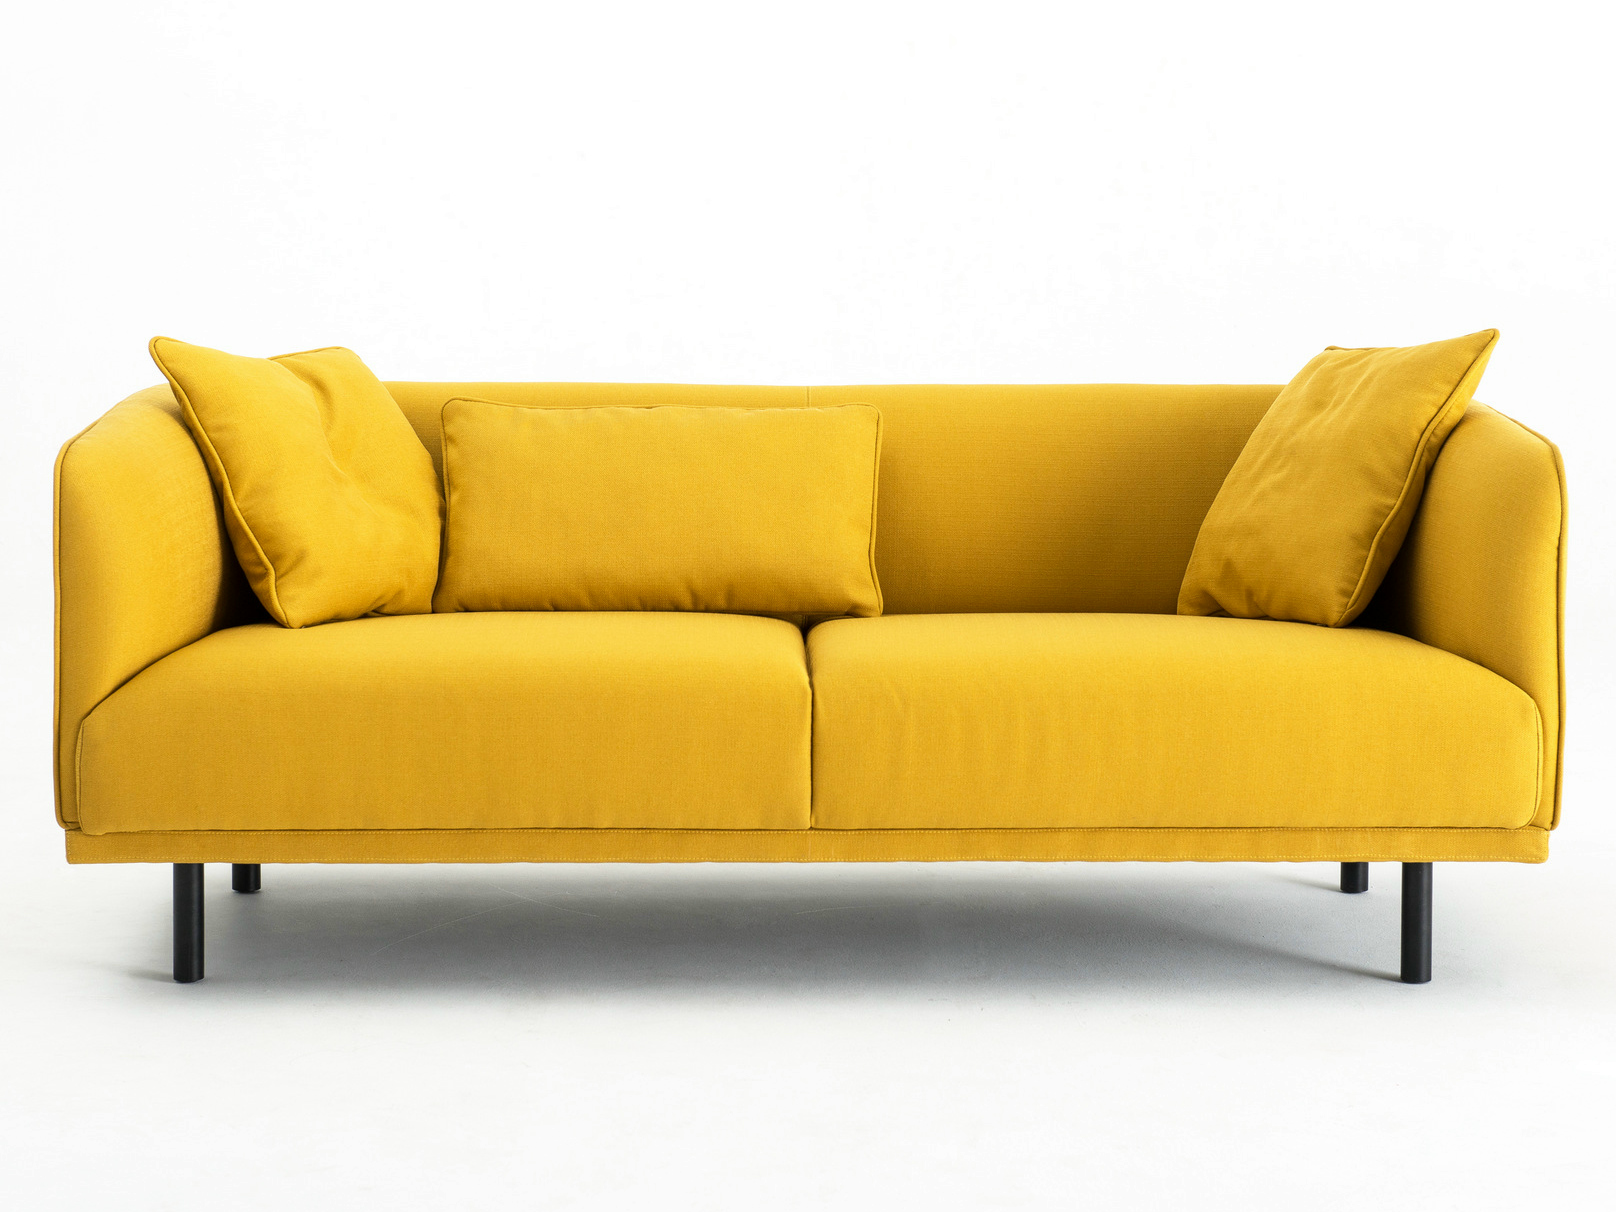 Sofa Mart Couches Home Design Ideas and